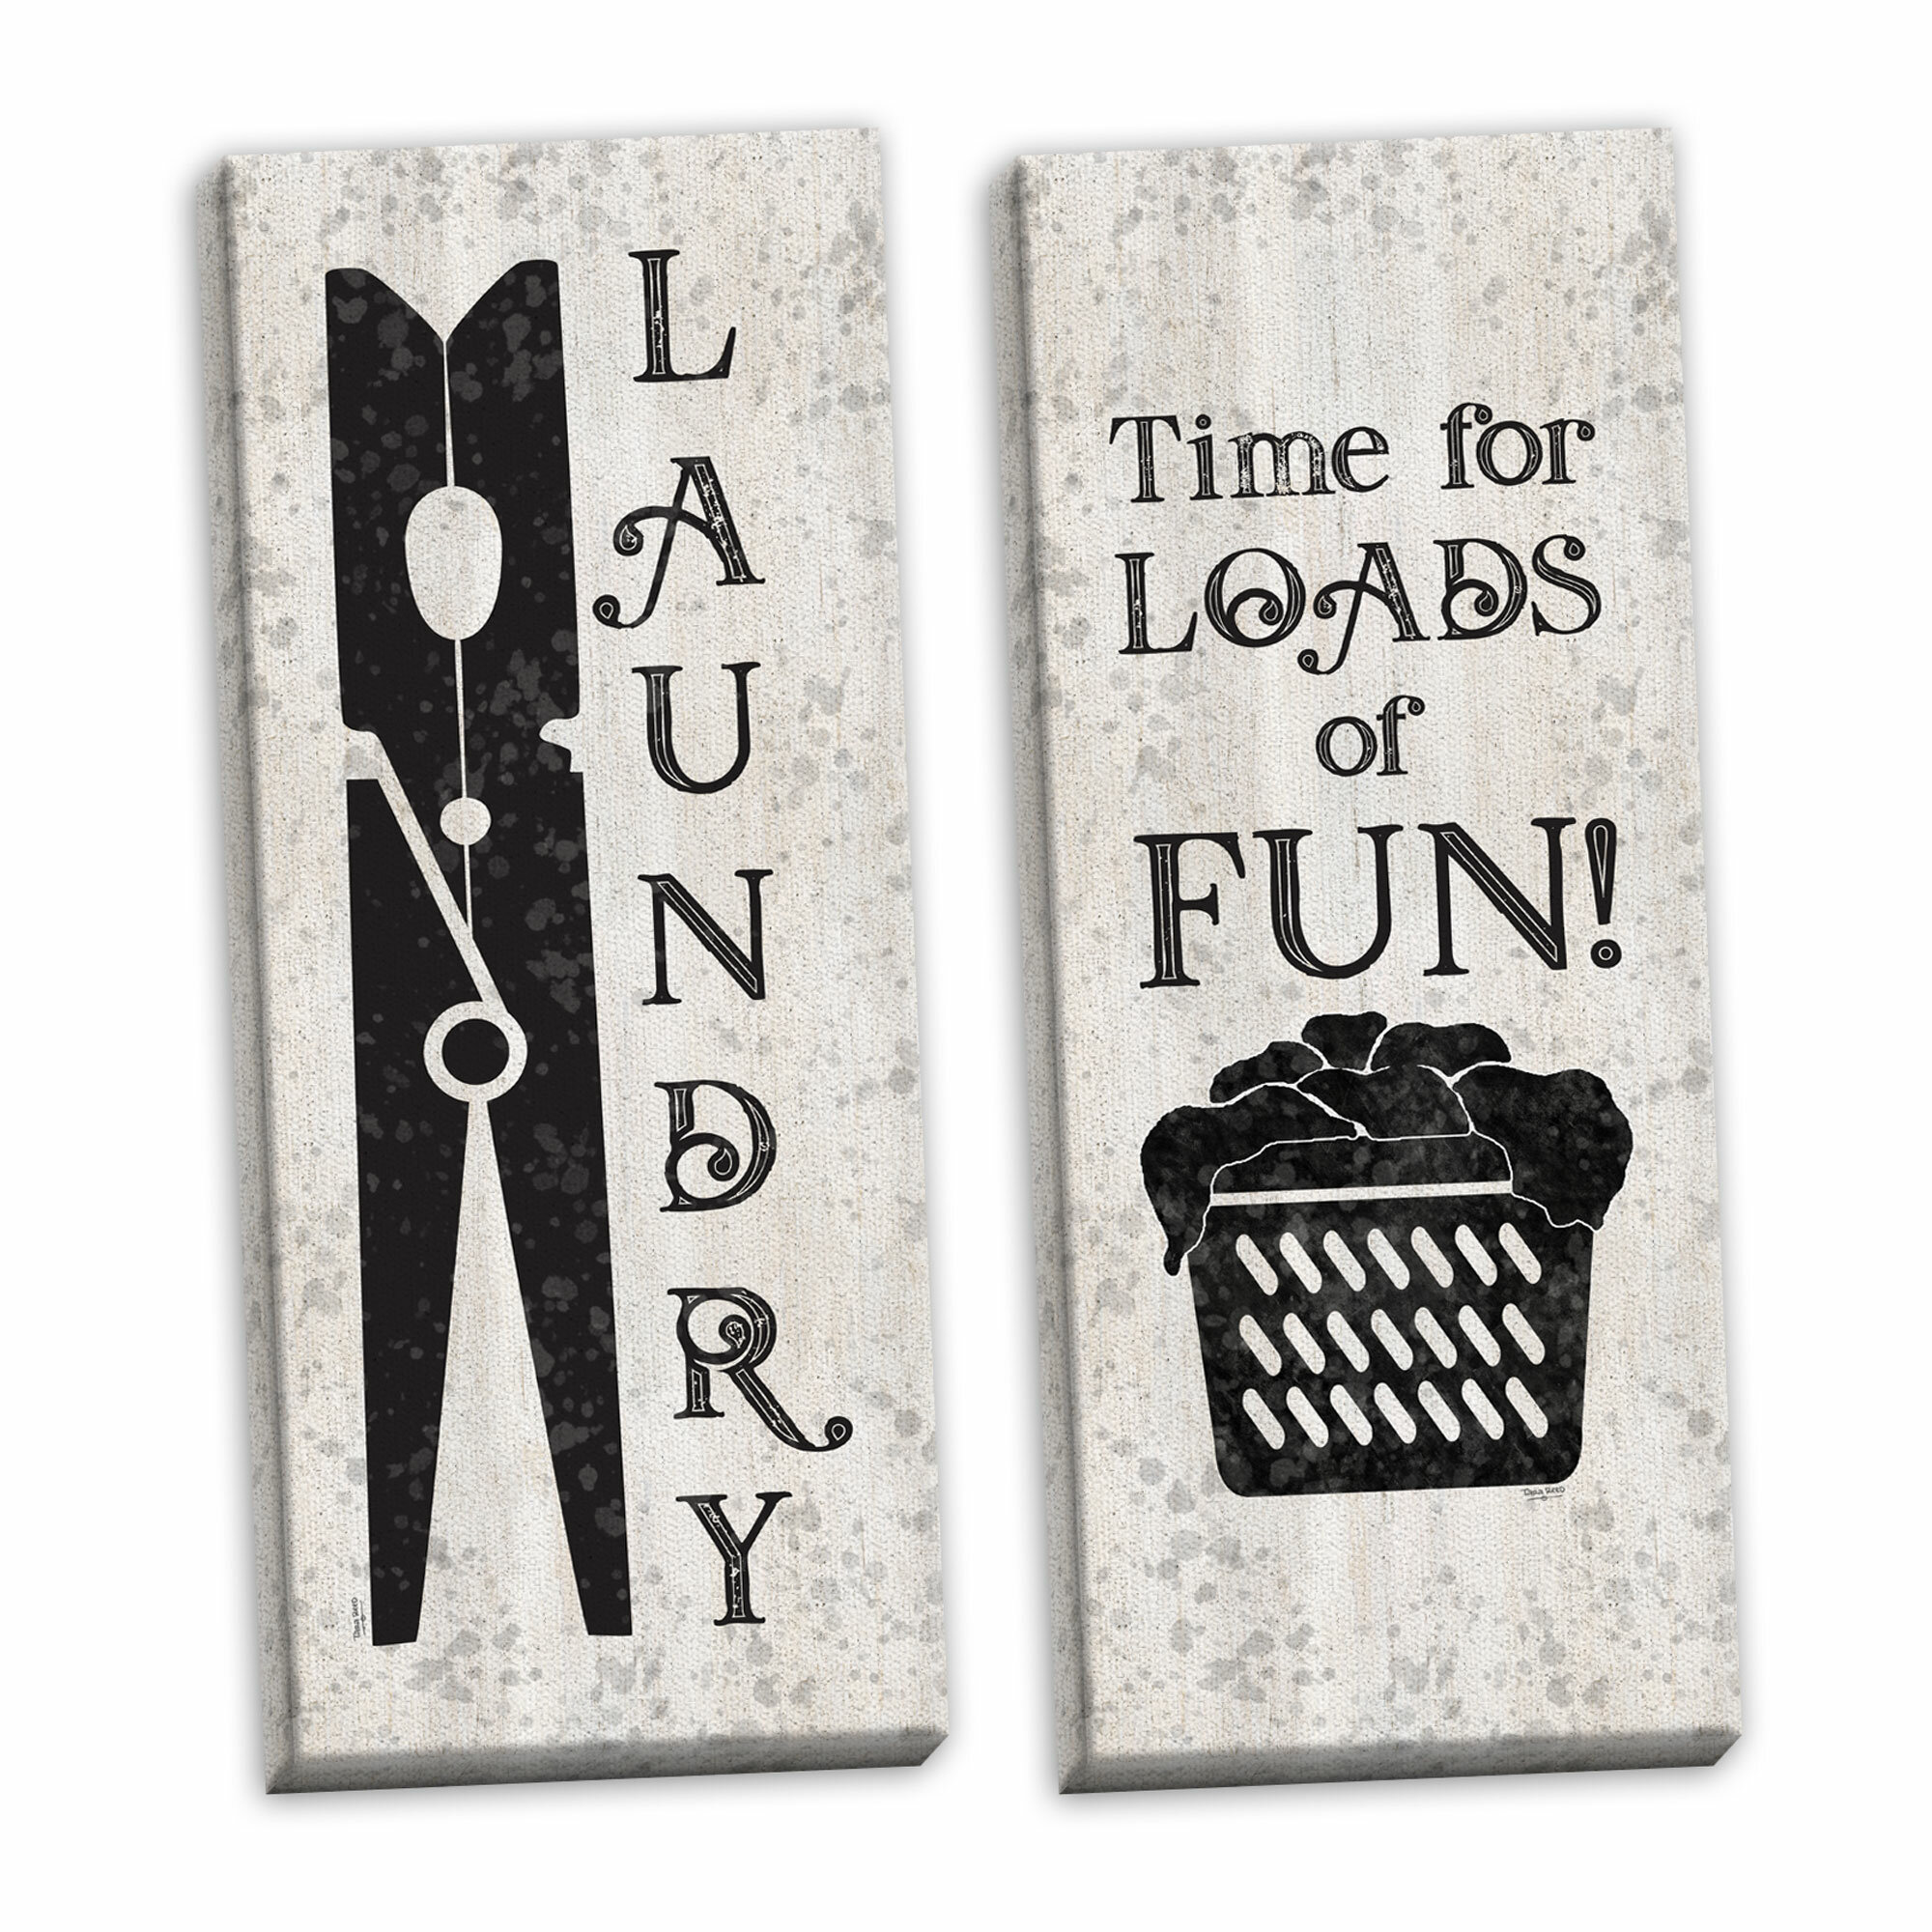 August Grove Laundry Room Humor Clothespin Loads Of Fun By Tara Reed 2 Piece Graphic Art Print Set On Canvas Wayfair